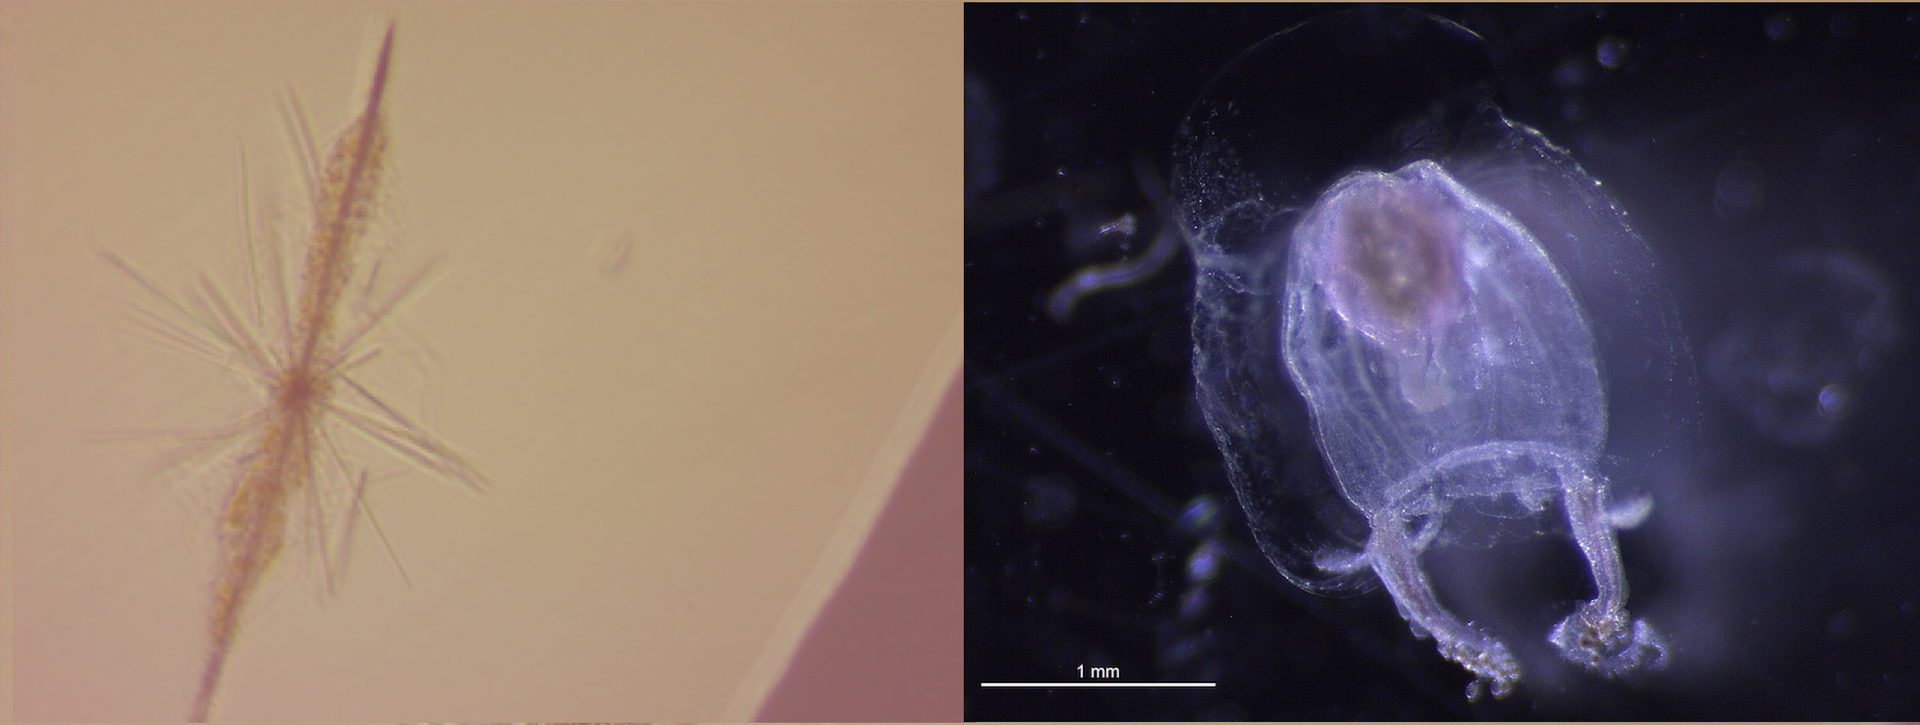 Two microscope images side by side. On the left is a long, thin, spiny organism. The image on the right contains an opaque rounded organism with a pair of dangling tentacles. A scale bar reading one millimeter is placed next to the organism and is approximately half its total width